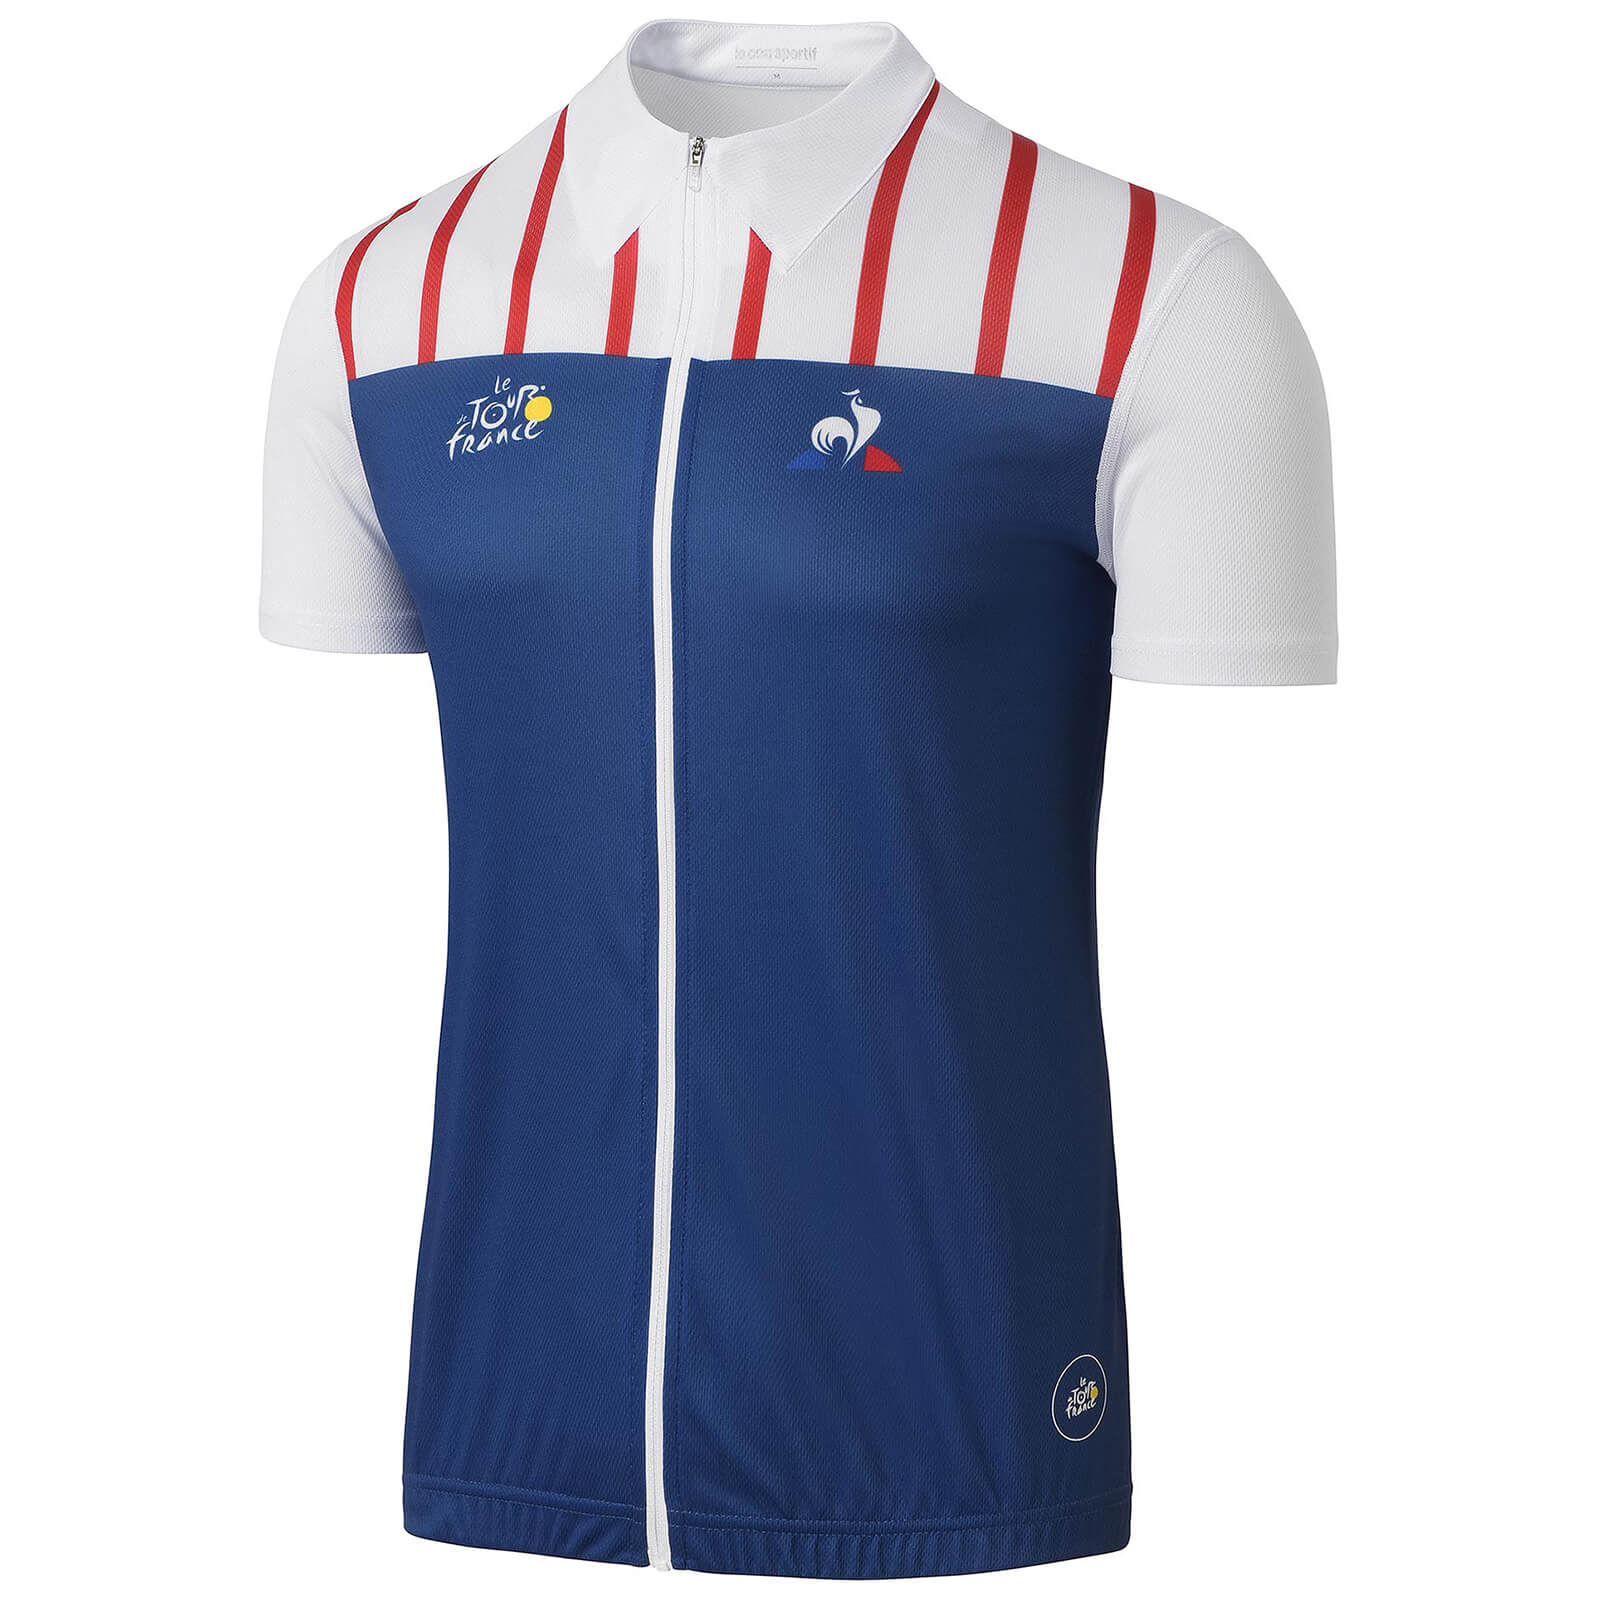 Le Coq Sportif Tour de France Dedicated Jersey 2017 - Blue/White